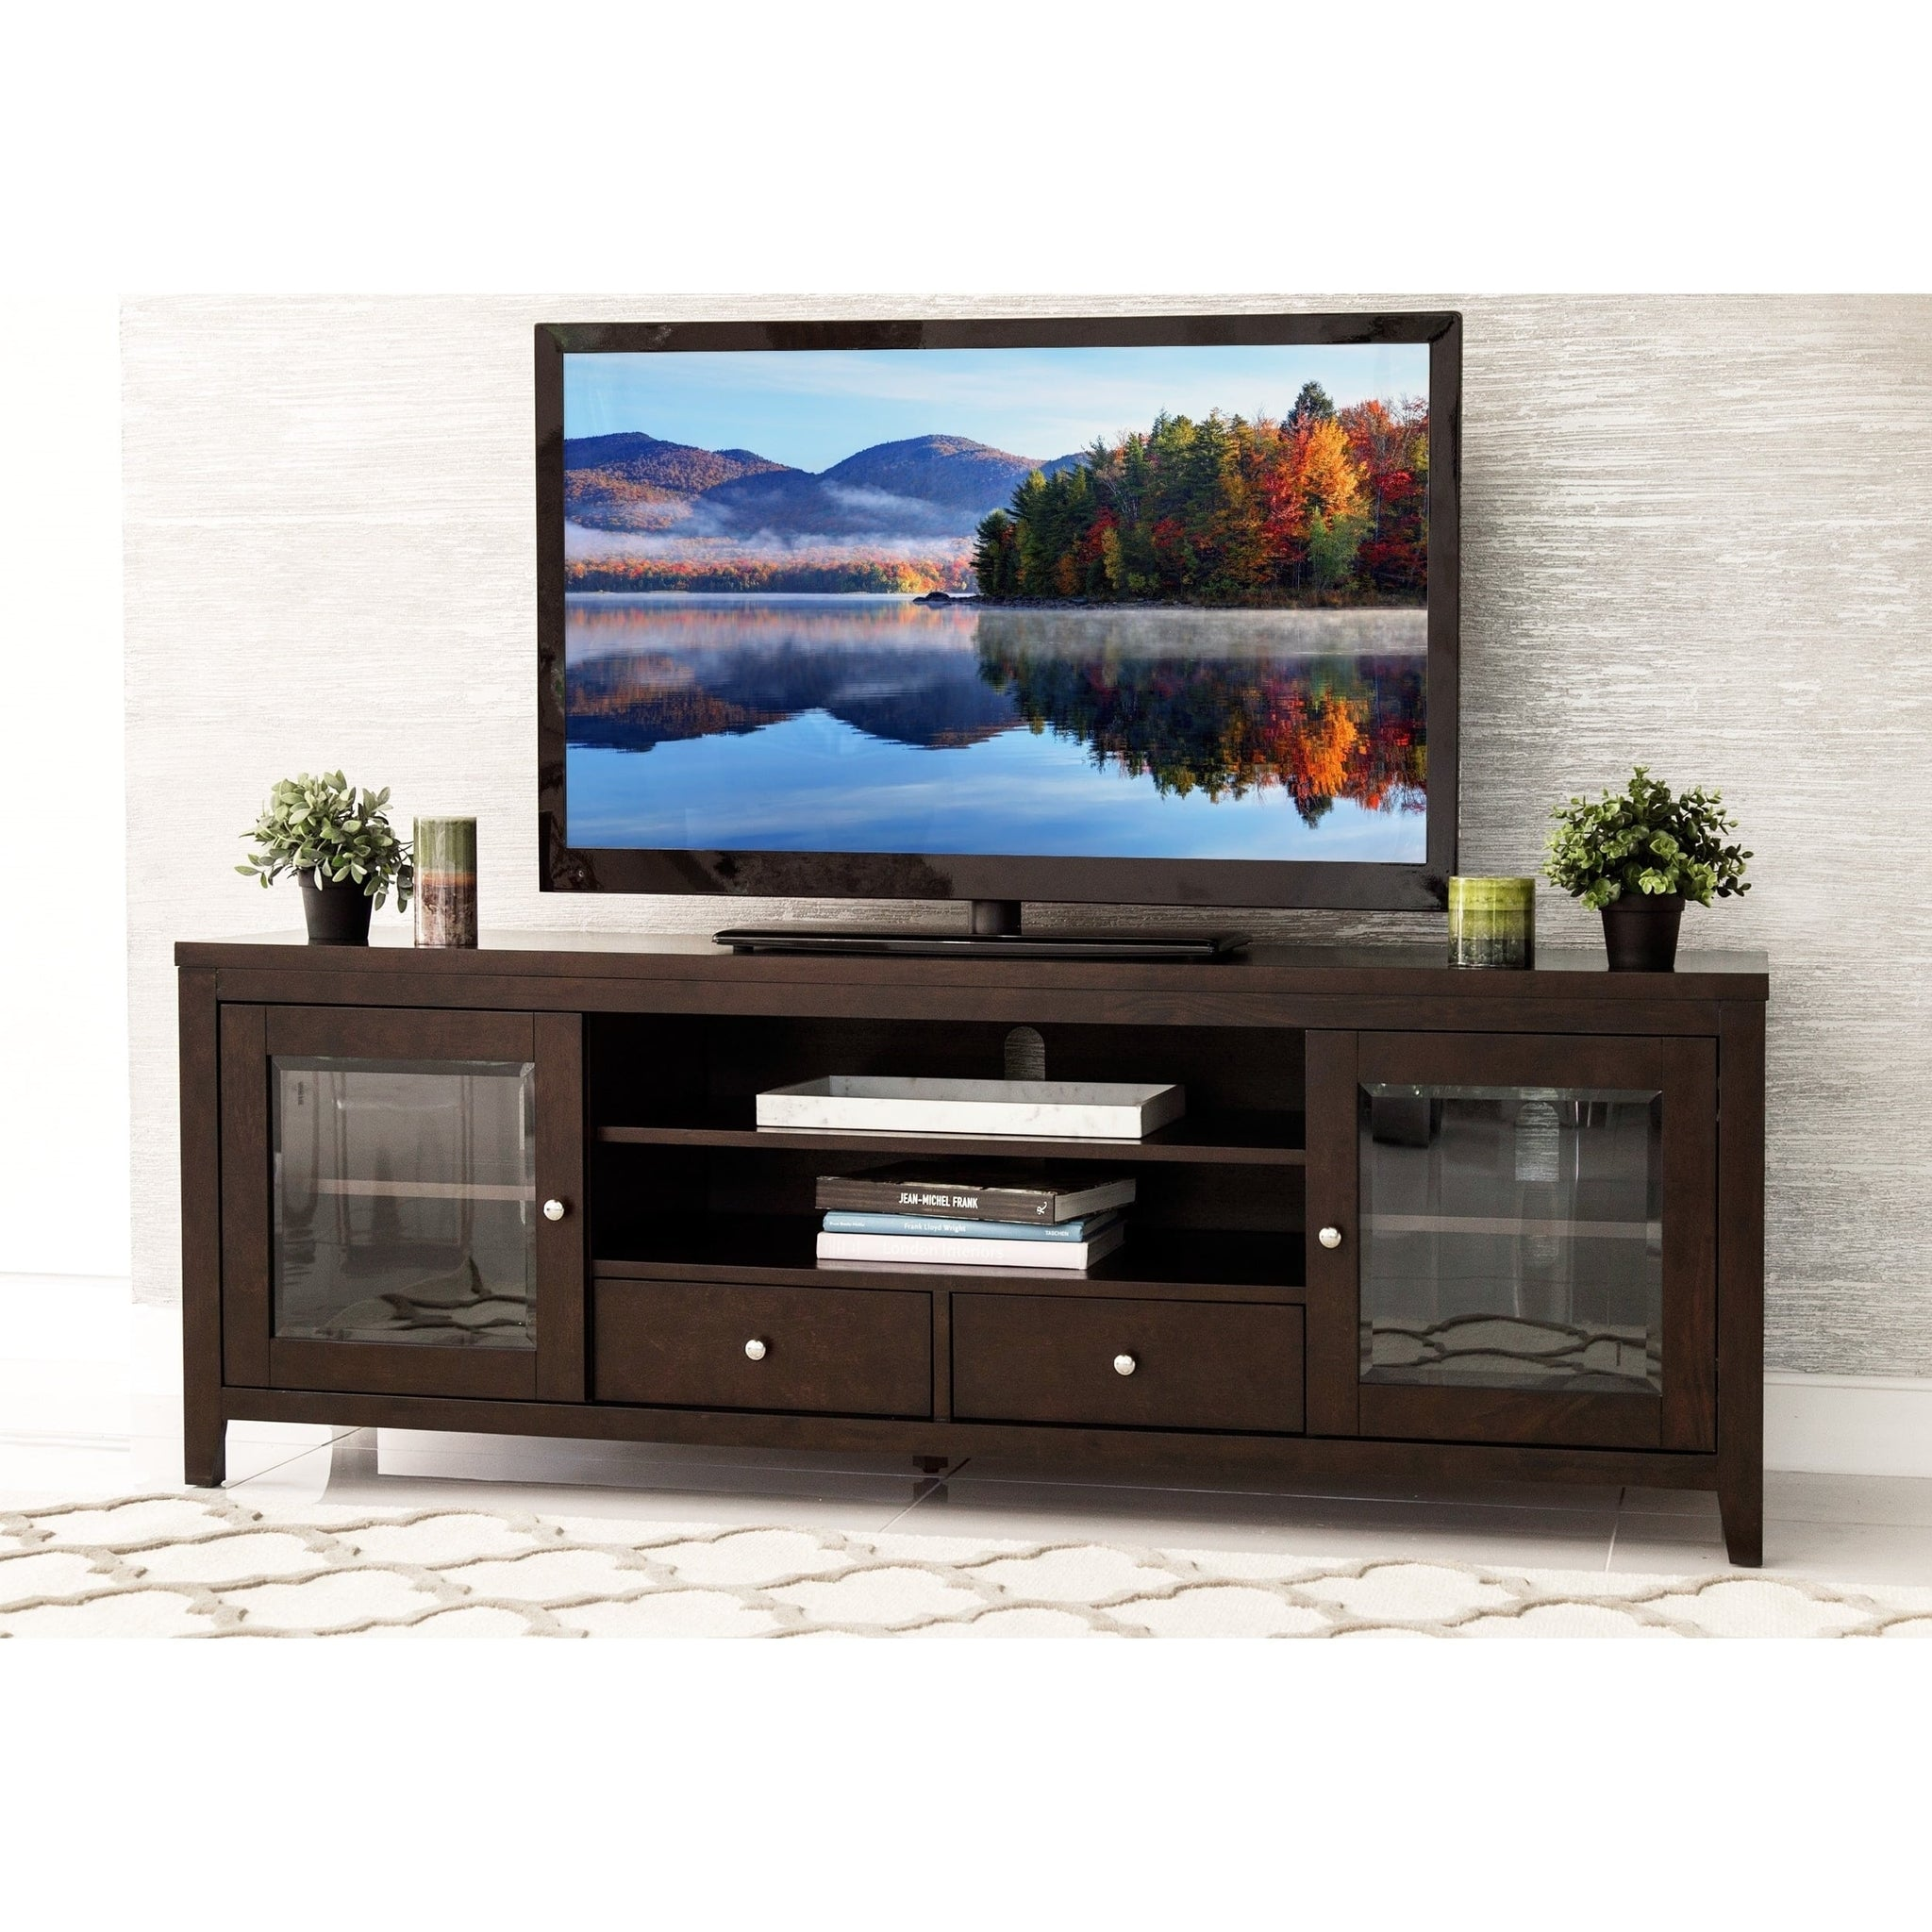 Solid Wood 72-inch TV Console